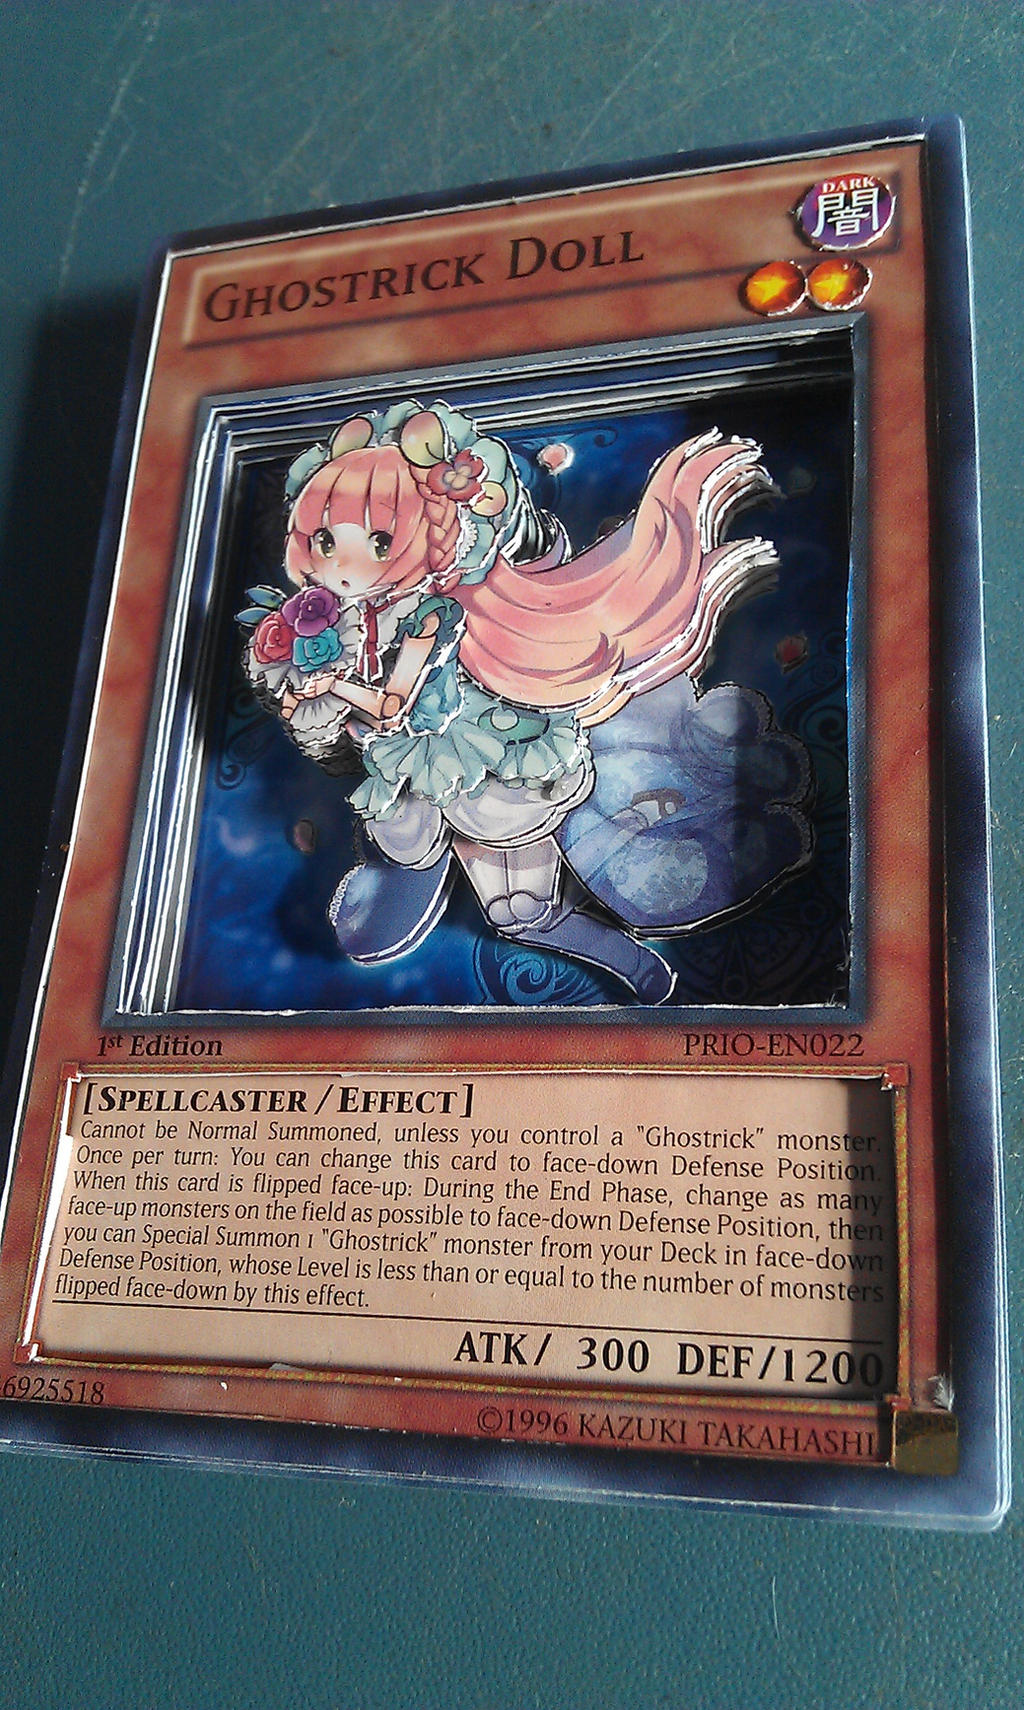 3d yu gi oh card ghostrick doll by ultimate lol on deviantart